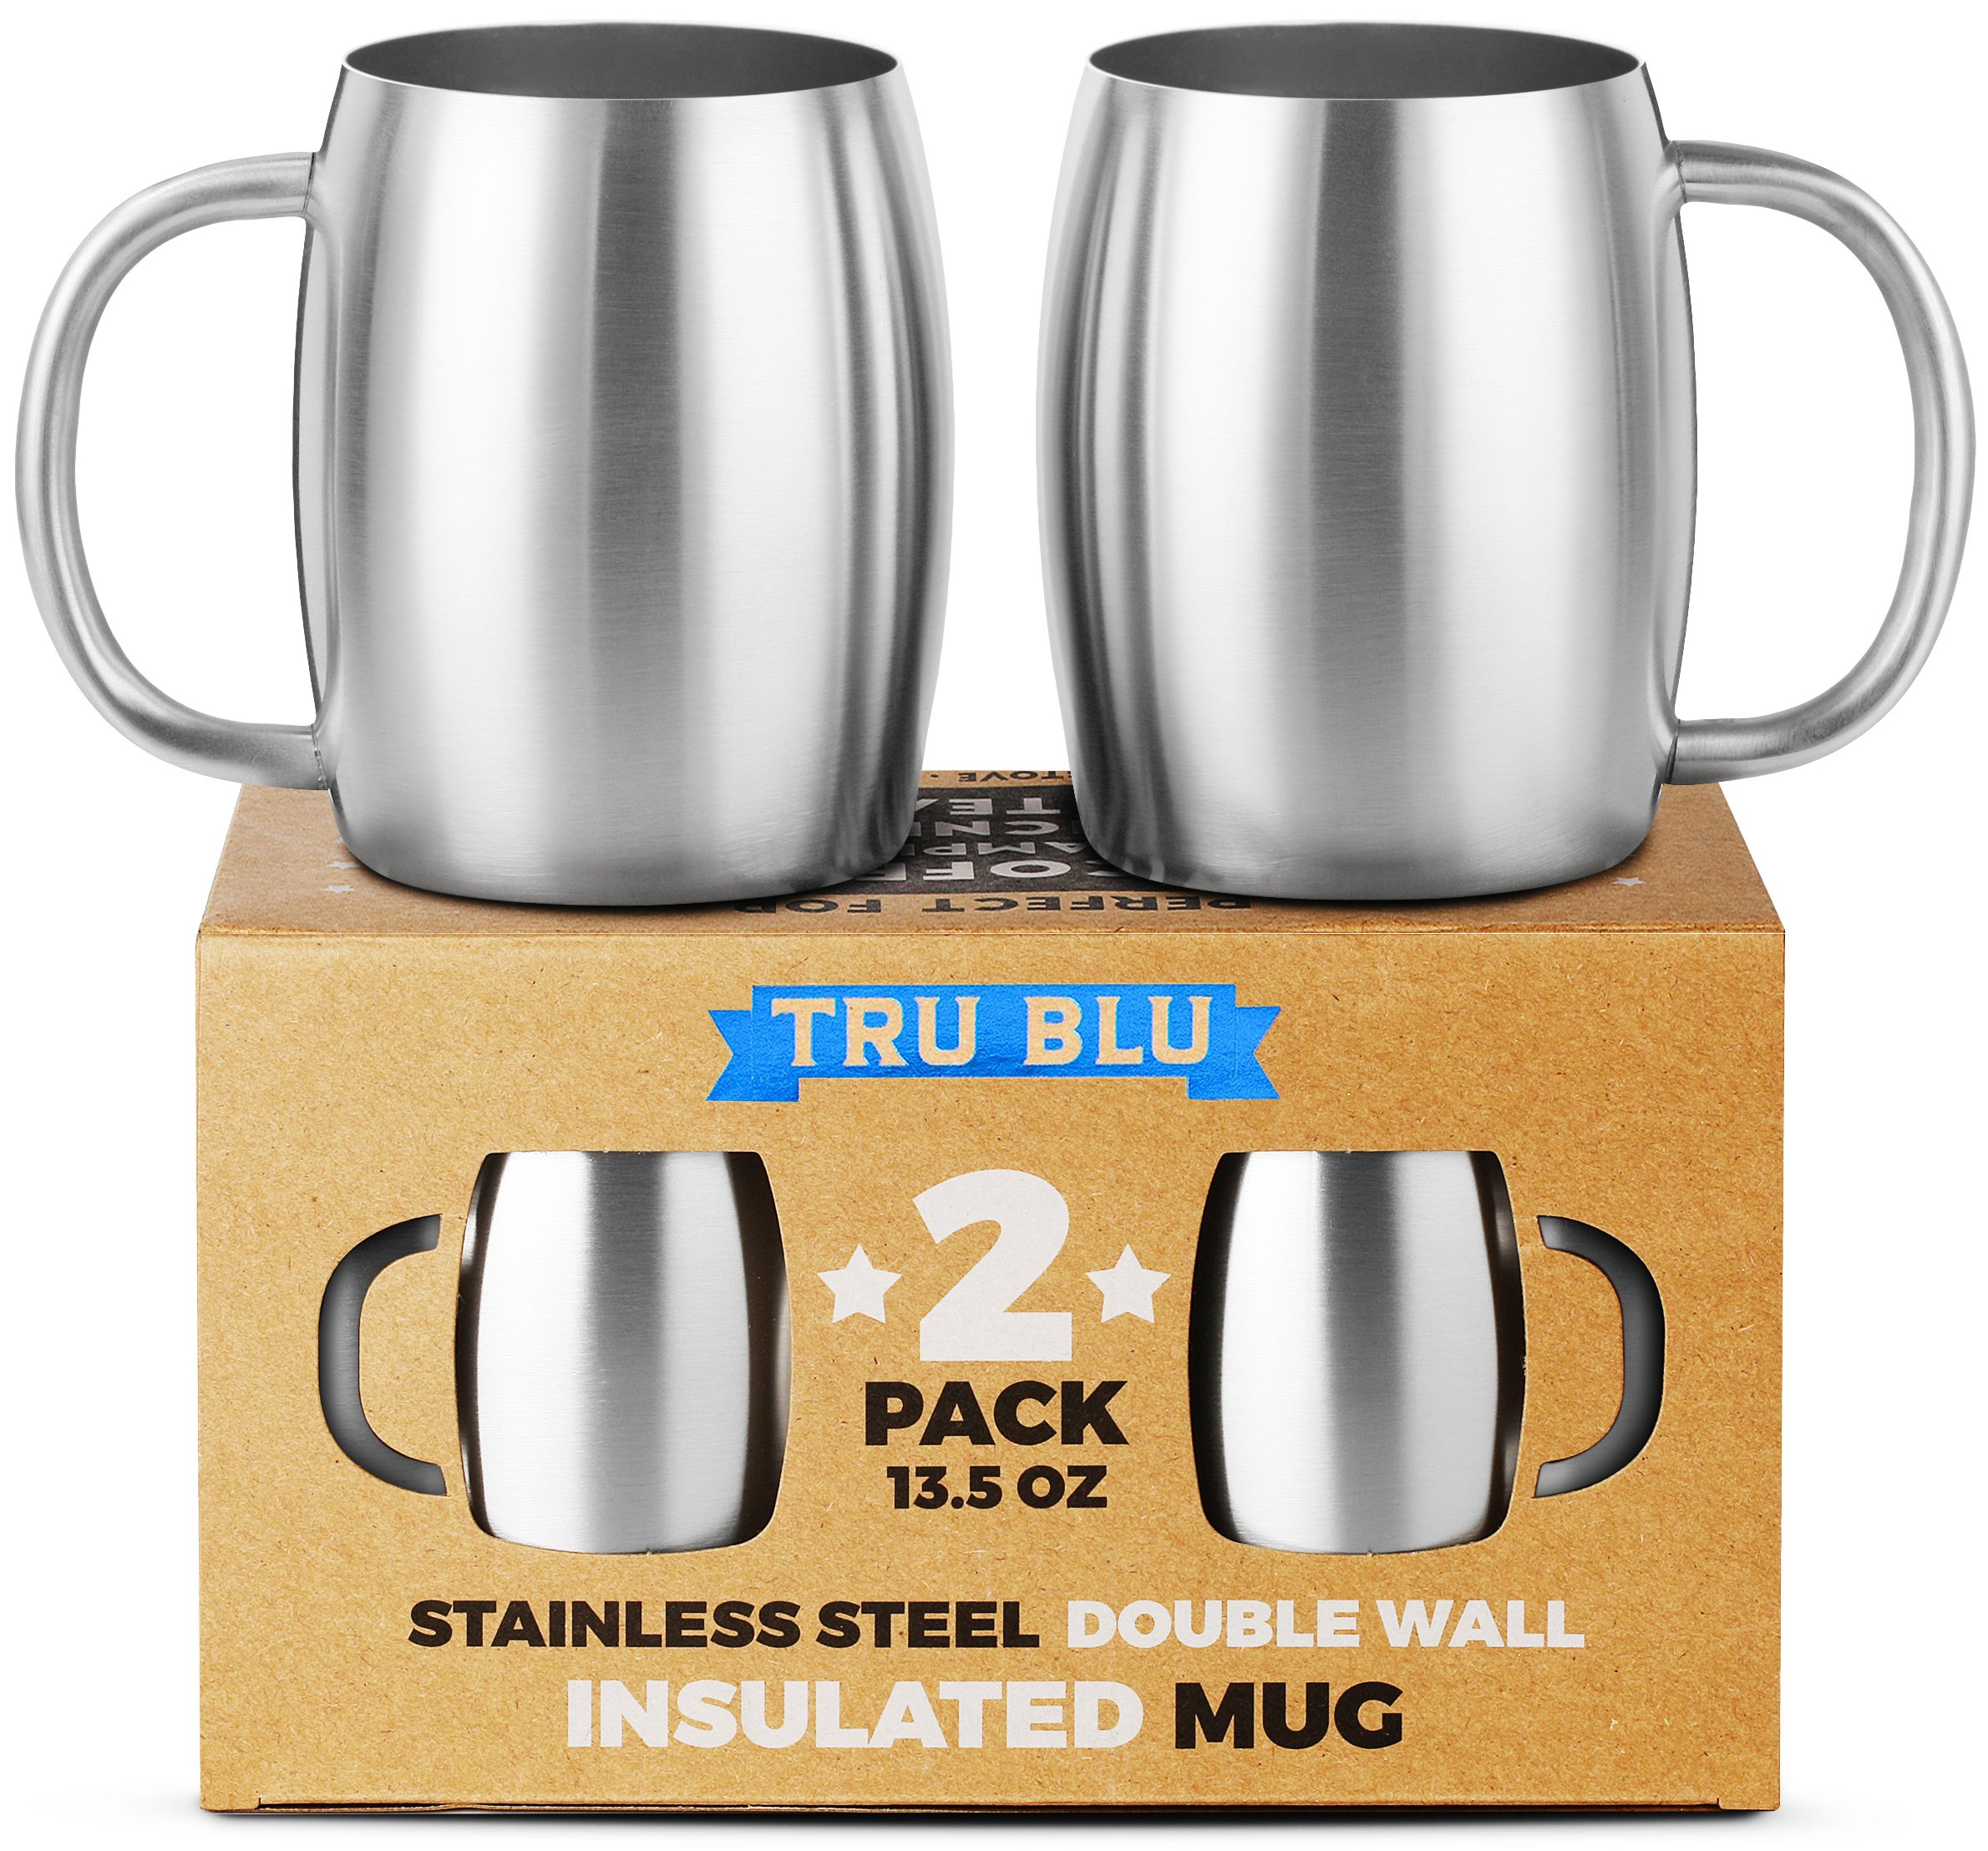 Stainless Steel Coffee Mug, Set of 2 – 13.5 oz Premium Double Wall Insulated Travel Mugs – Shatterproof, Dishwasher Safe, Comfortable Handle Cups for Tea, Beer by Tru Blu Steel